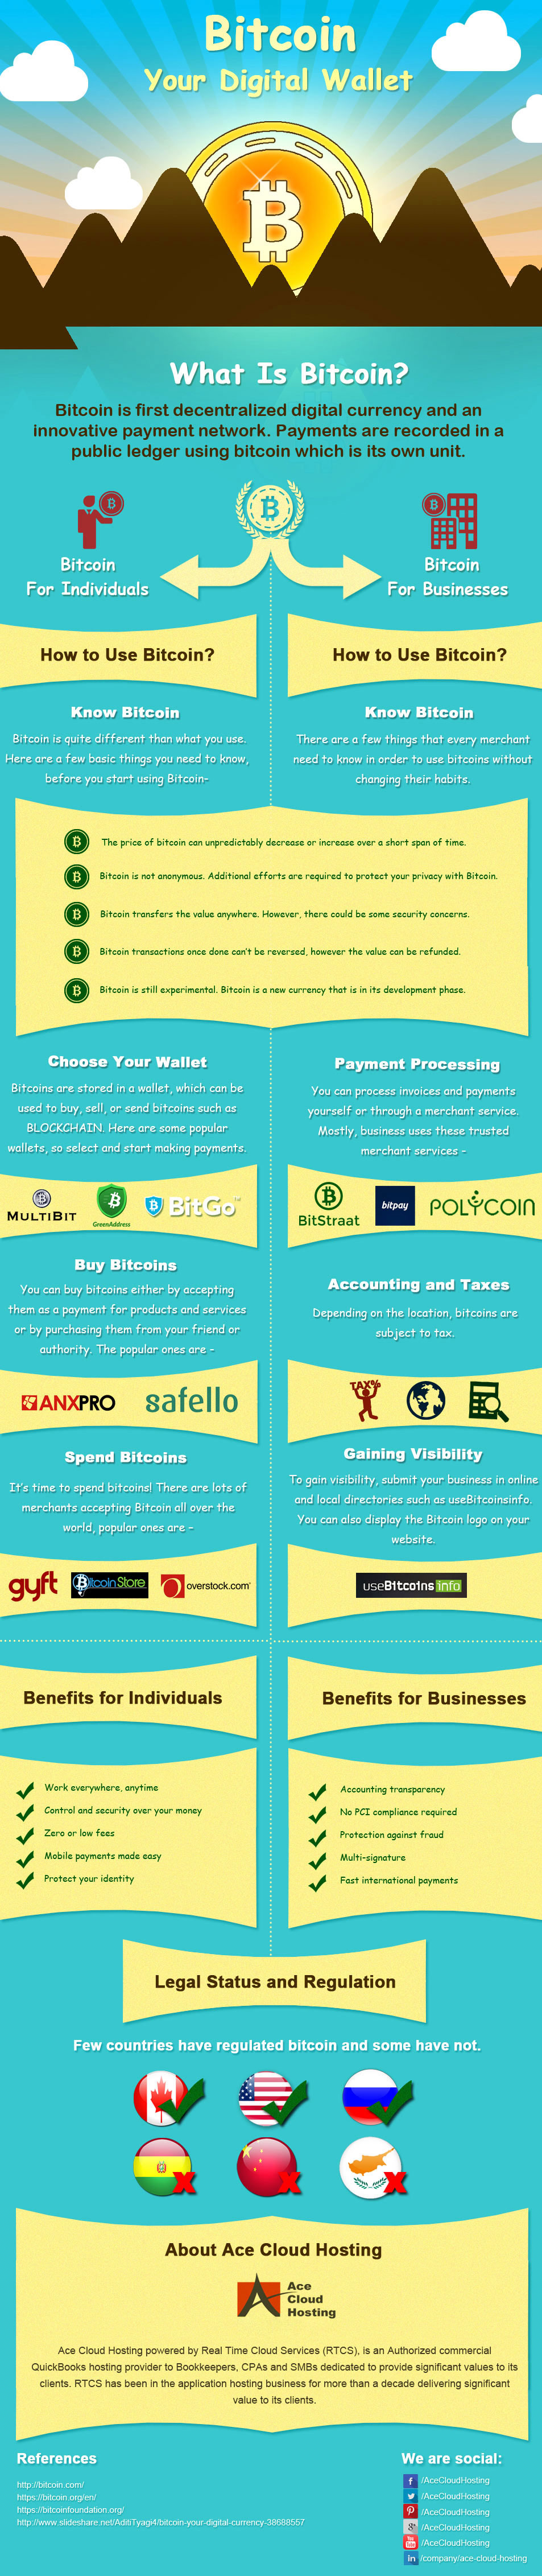 Getting Started With Bitcoin Your Digital Wallet Infographic